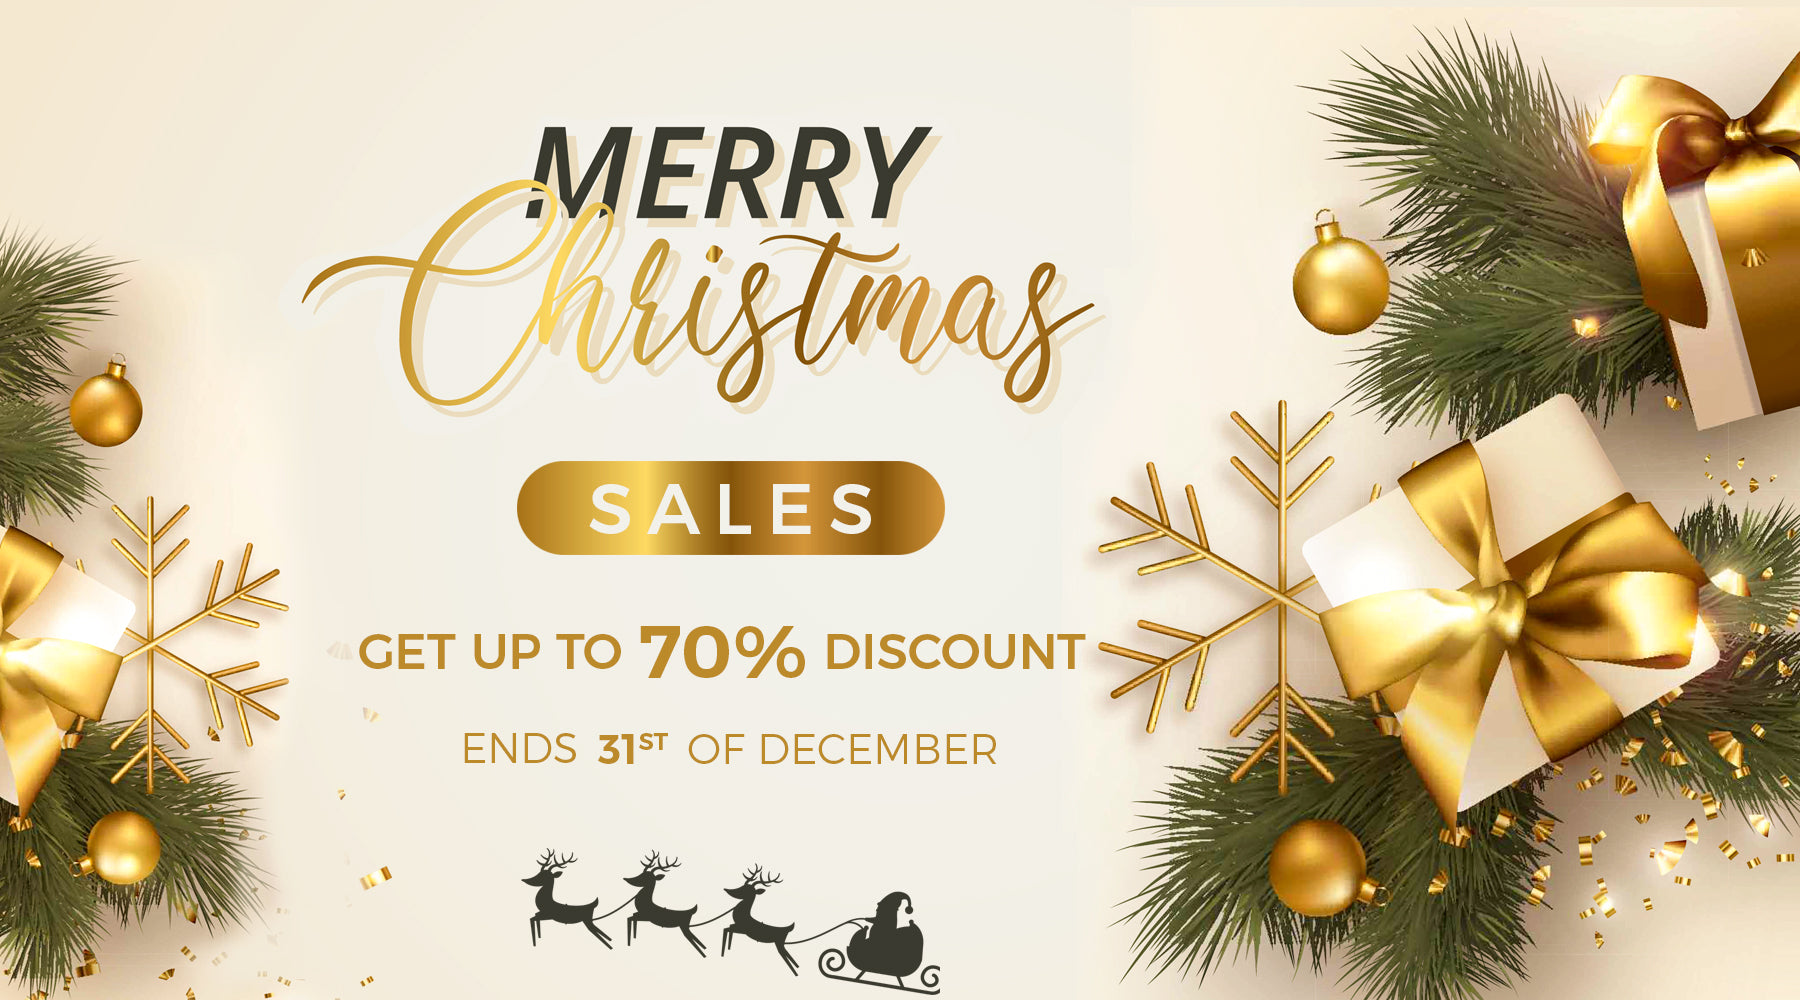 Gong Life Care Solutions |Merry Christmas | Discounts of up to 70%!